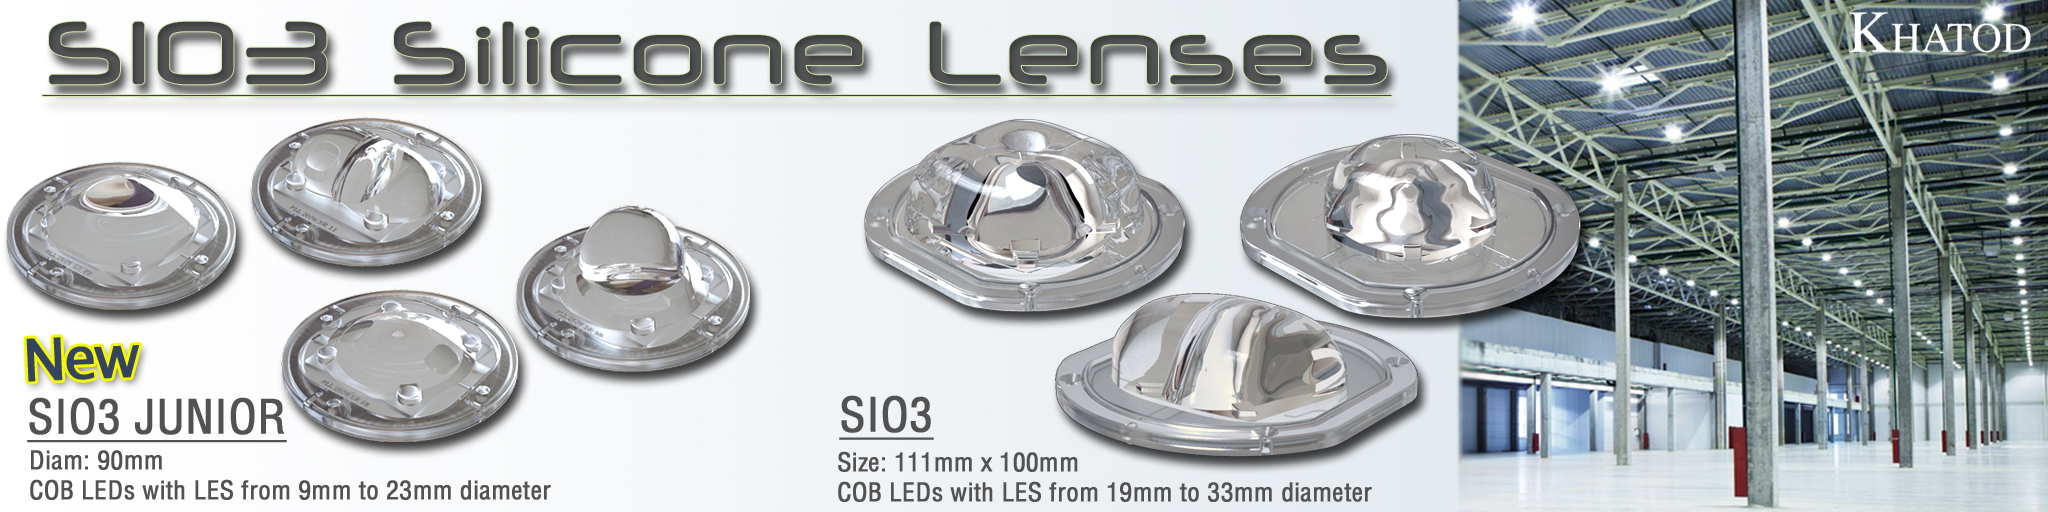 SIO3 Silicone Lenses for COB LEDs